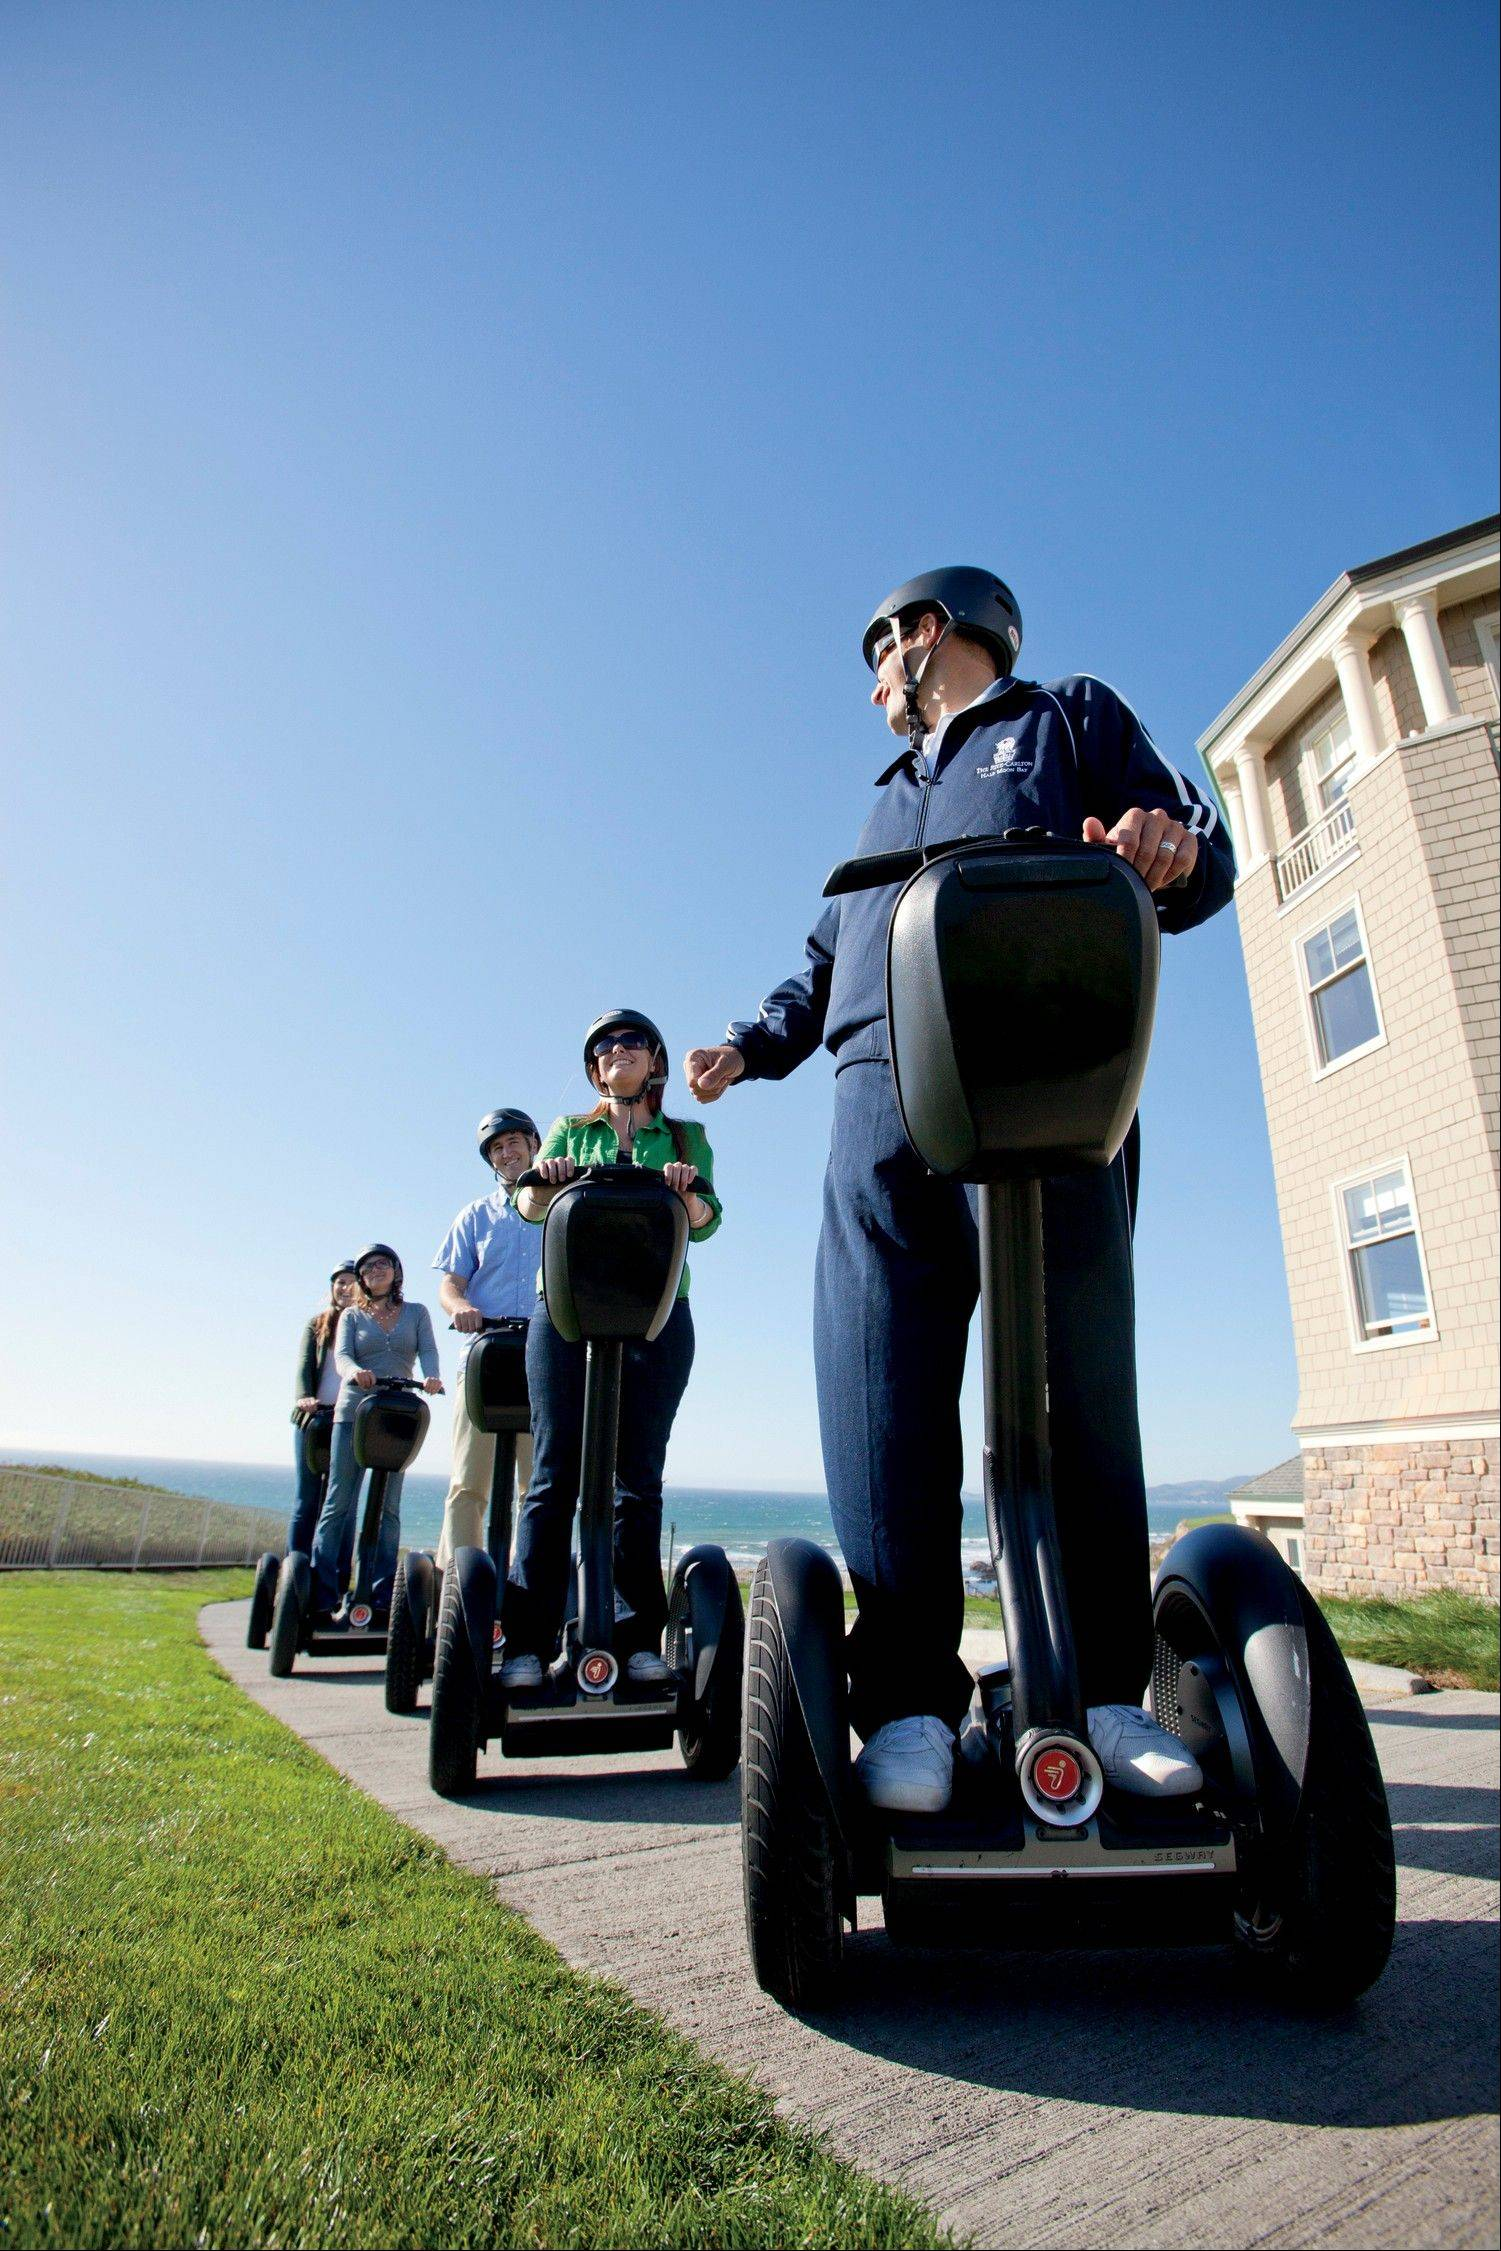 A recreational staff member lead a group of hotel guests on a Segway tour of the Coastal Trail in Half-Moon Bay, Calif., on the Pacific Ocean. A number of hotels offer Segway tours as a novel way to see their grounds and nearby scenic areas.